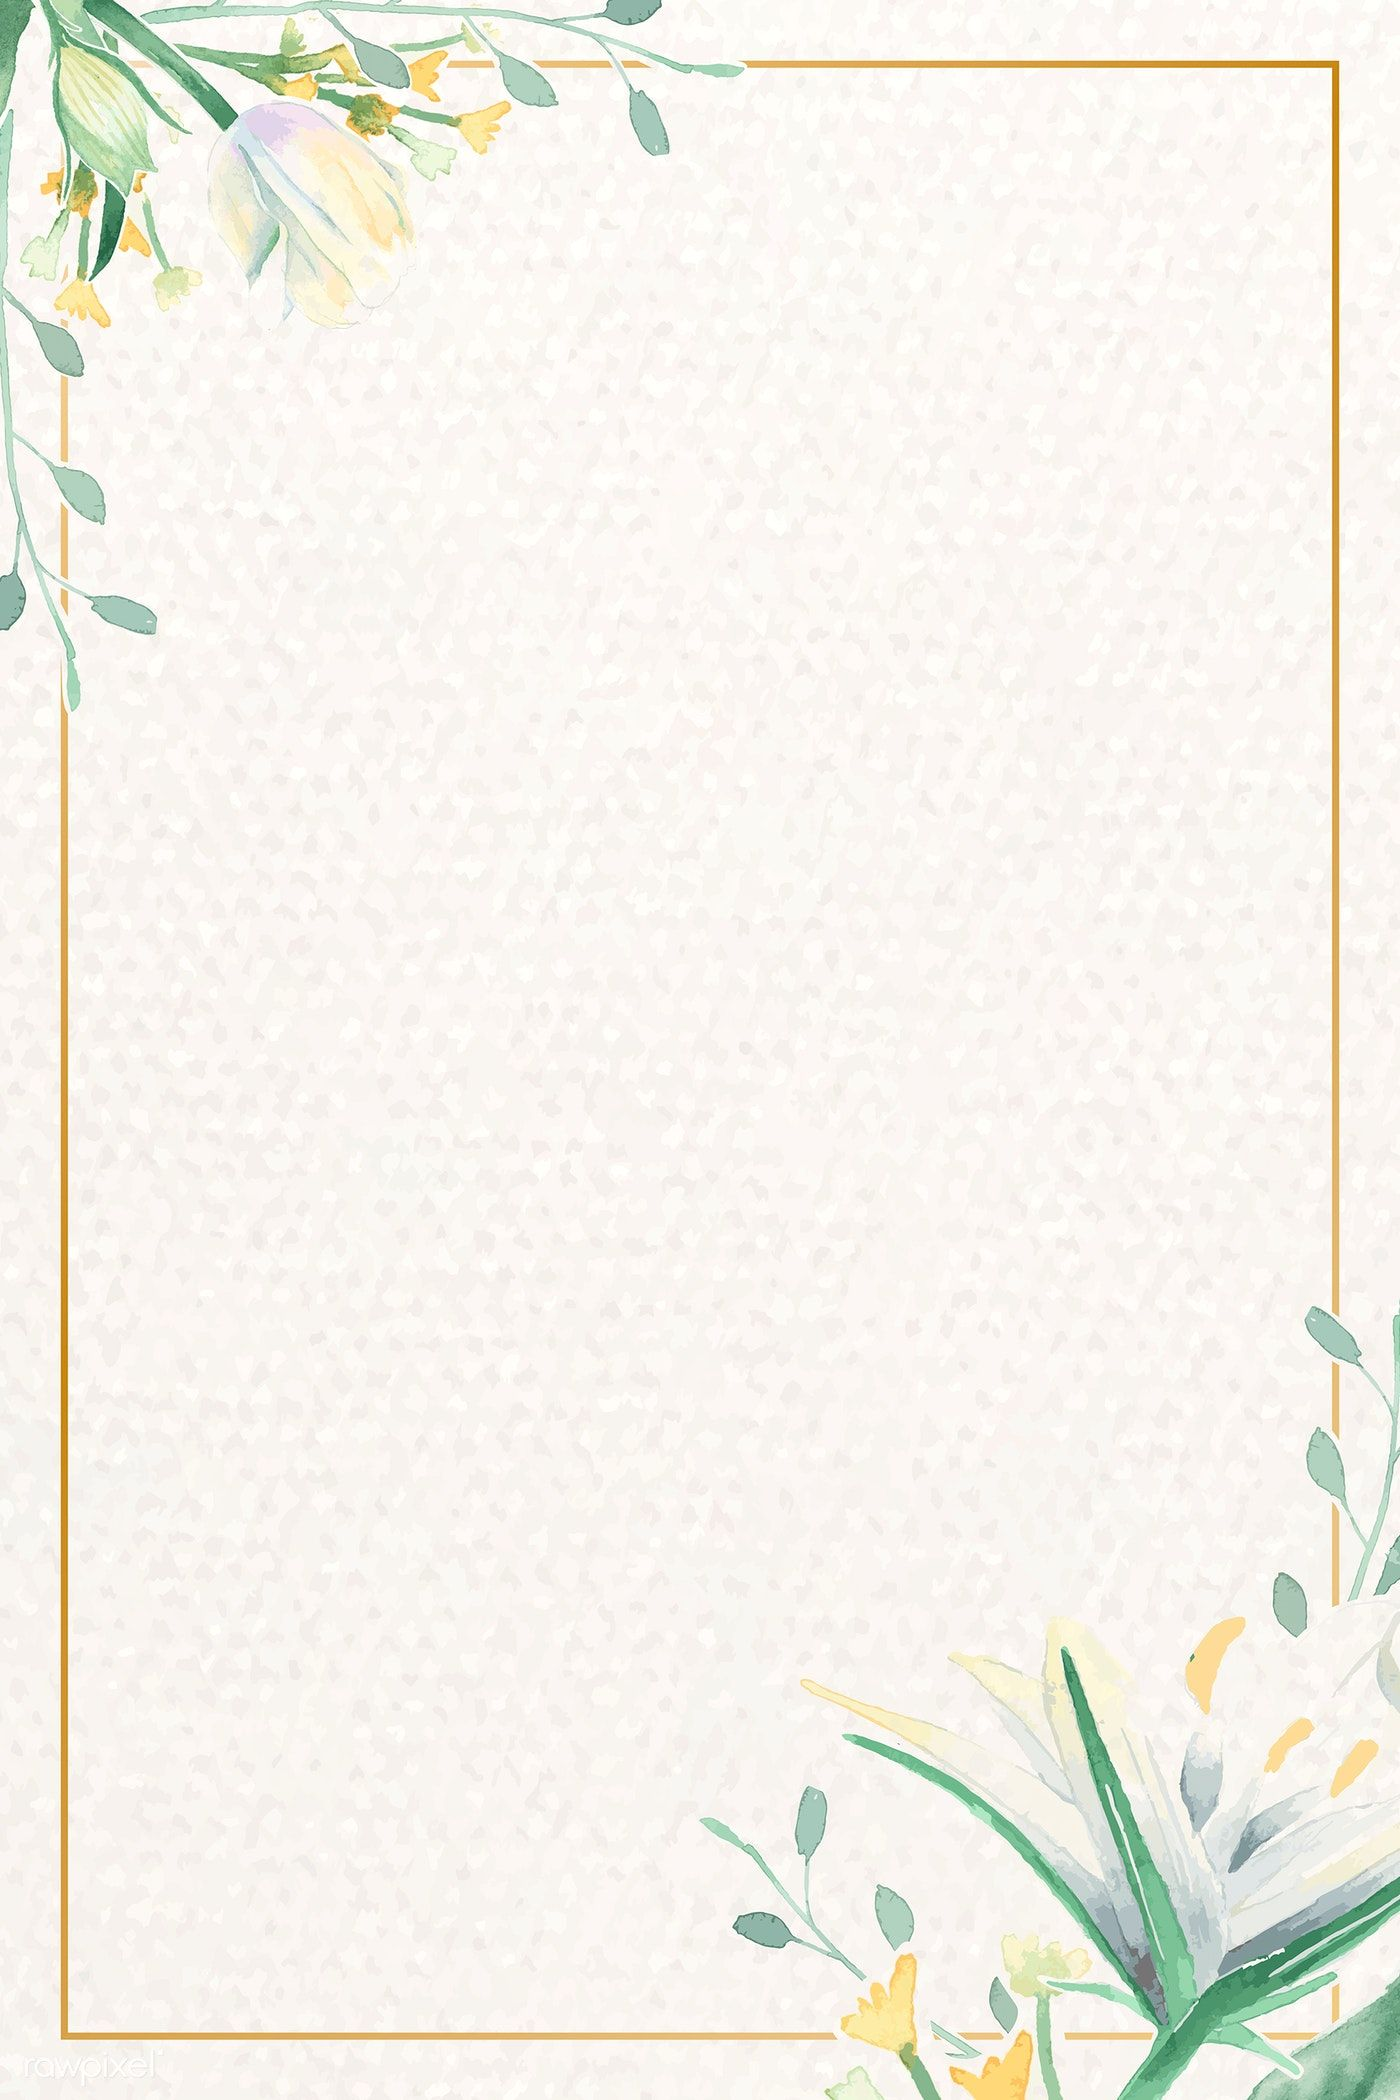 Download Premium Vector Of Vintage Watercolor Floral Card Template Vector Floral Watercolor Floral Cards Floral Cards Design